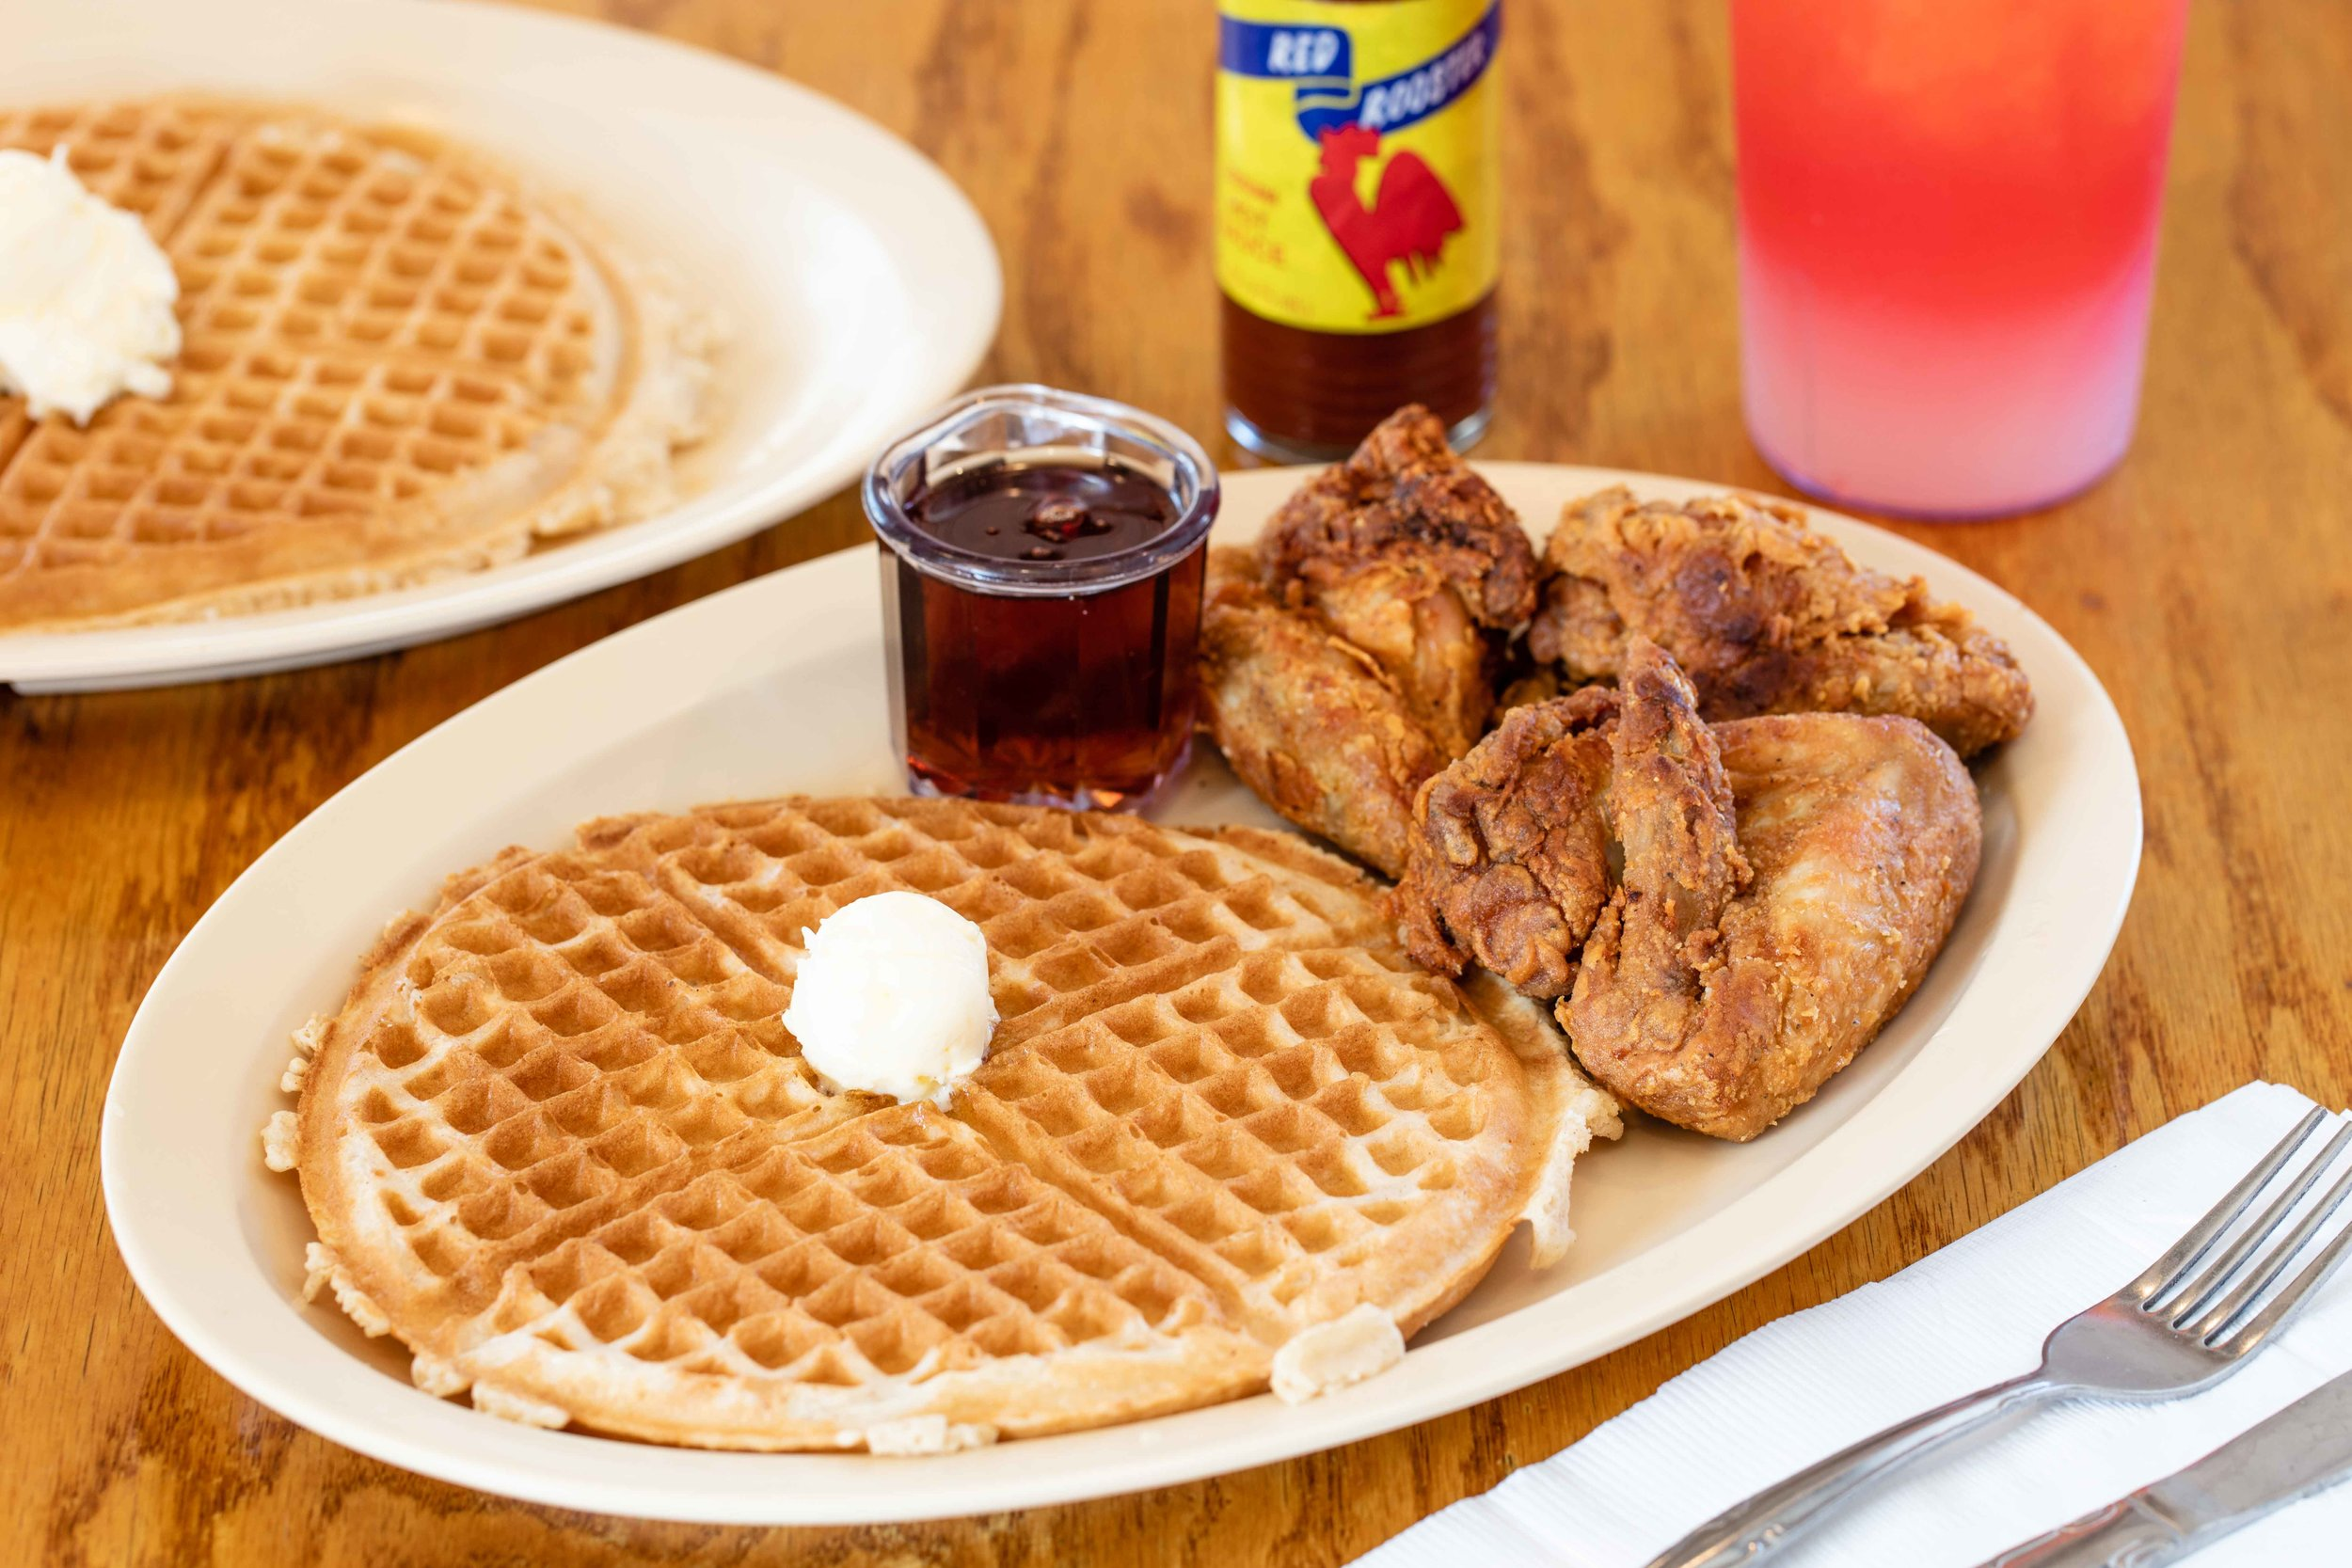 Obama Special with Waffles